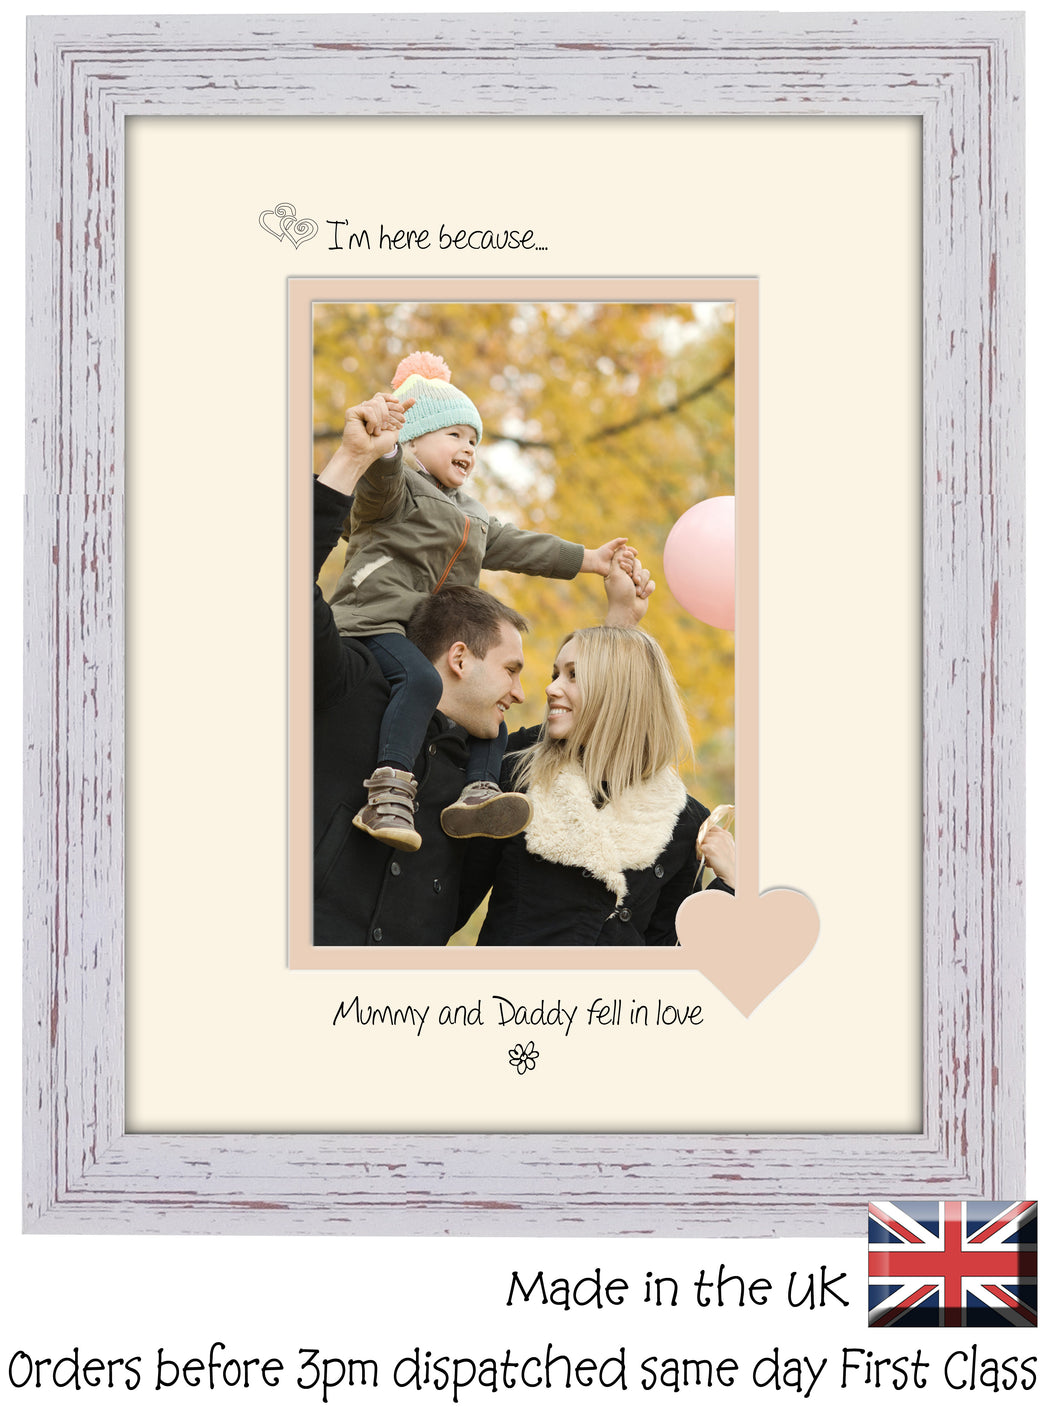 Mummy & Daddy Photo Frame - I'm here because… Mummy and Daddy fell in love Portrait photo frame 6